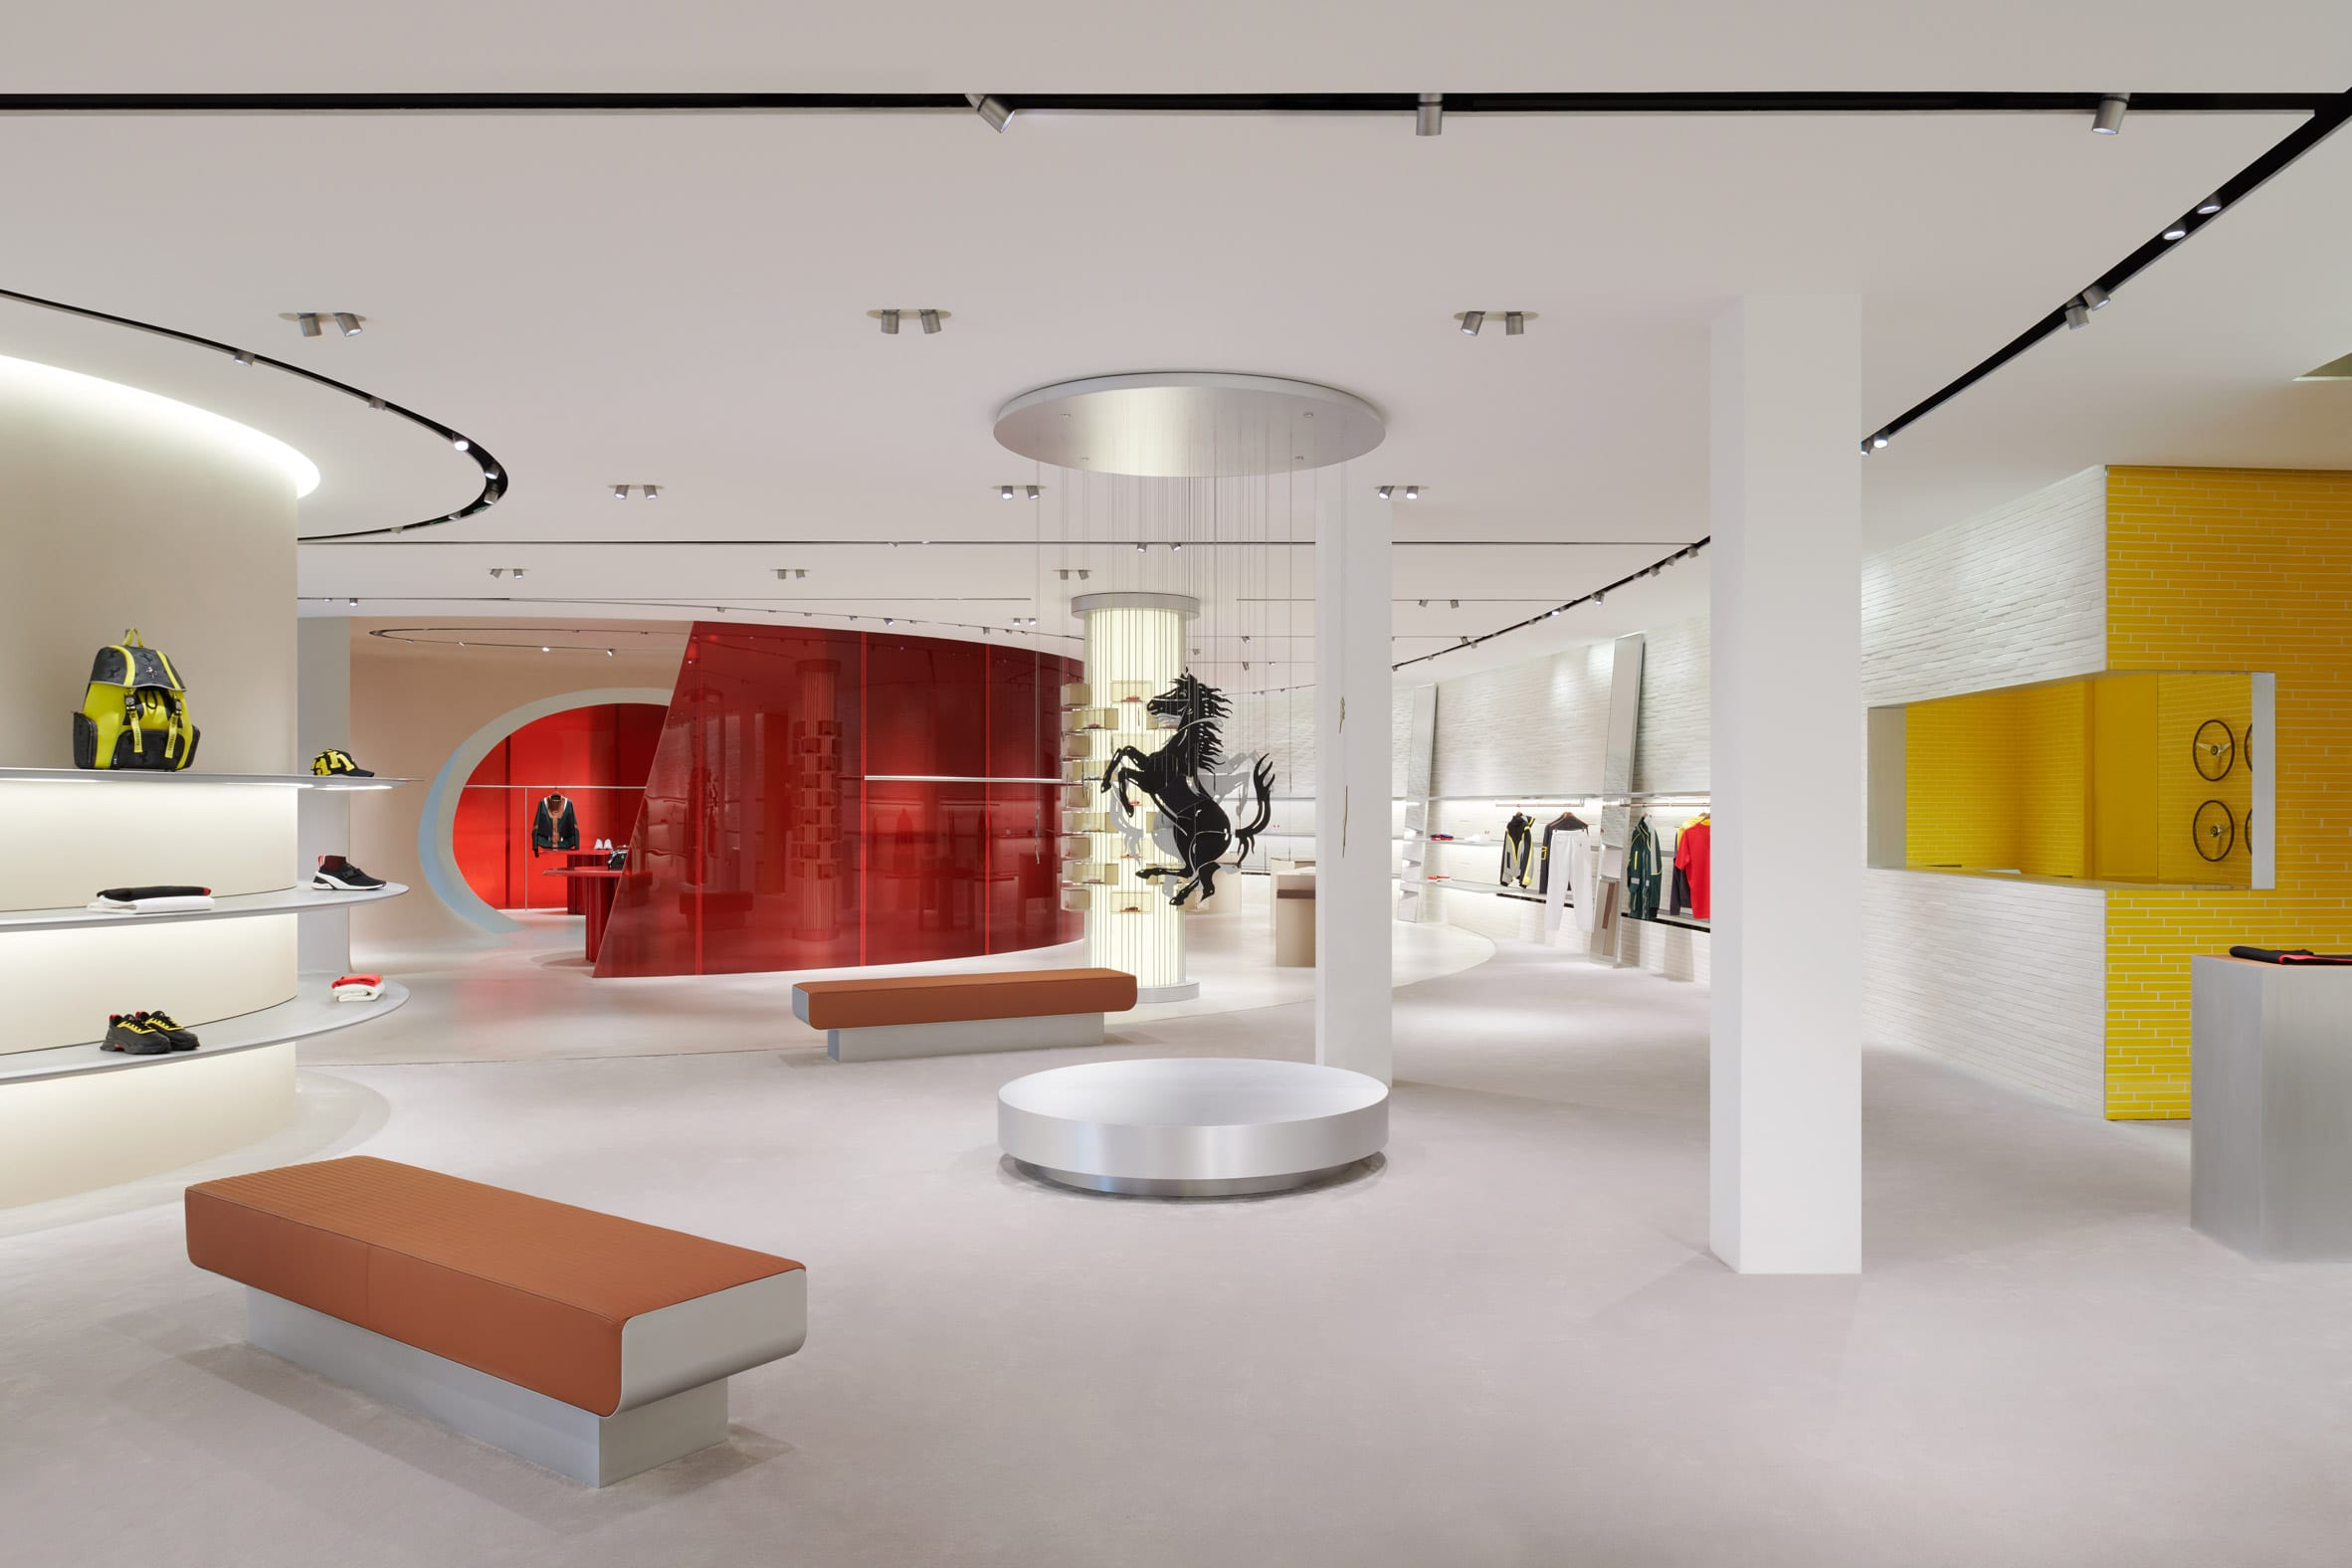 Display area of retail interior Sybarite with red and yellow walls